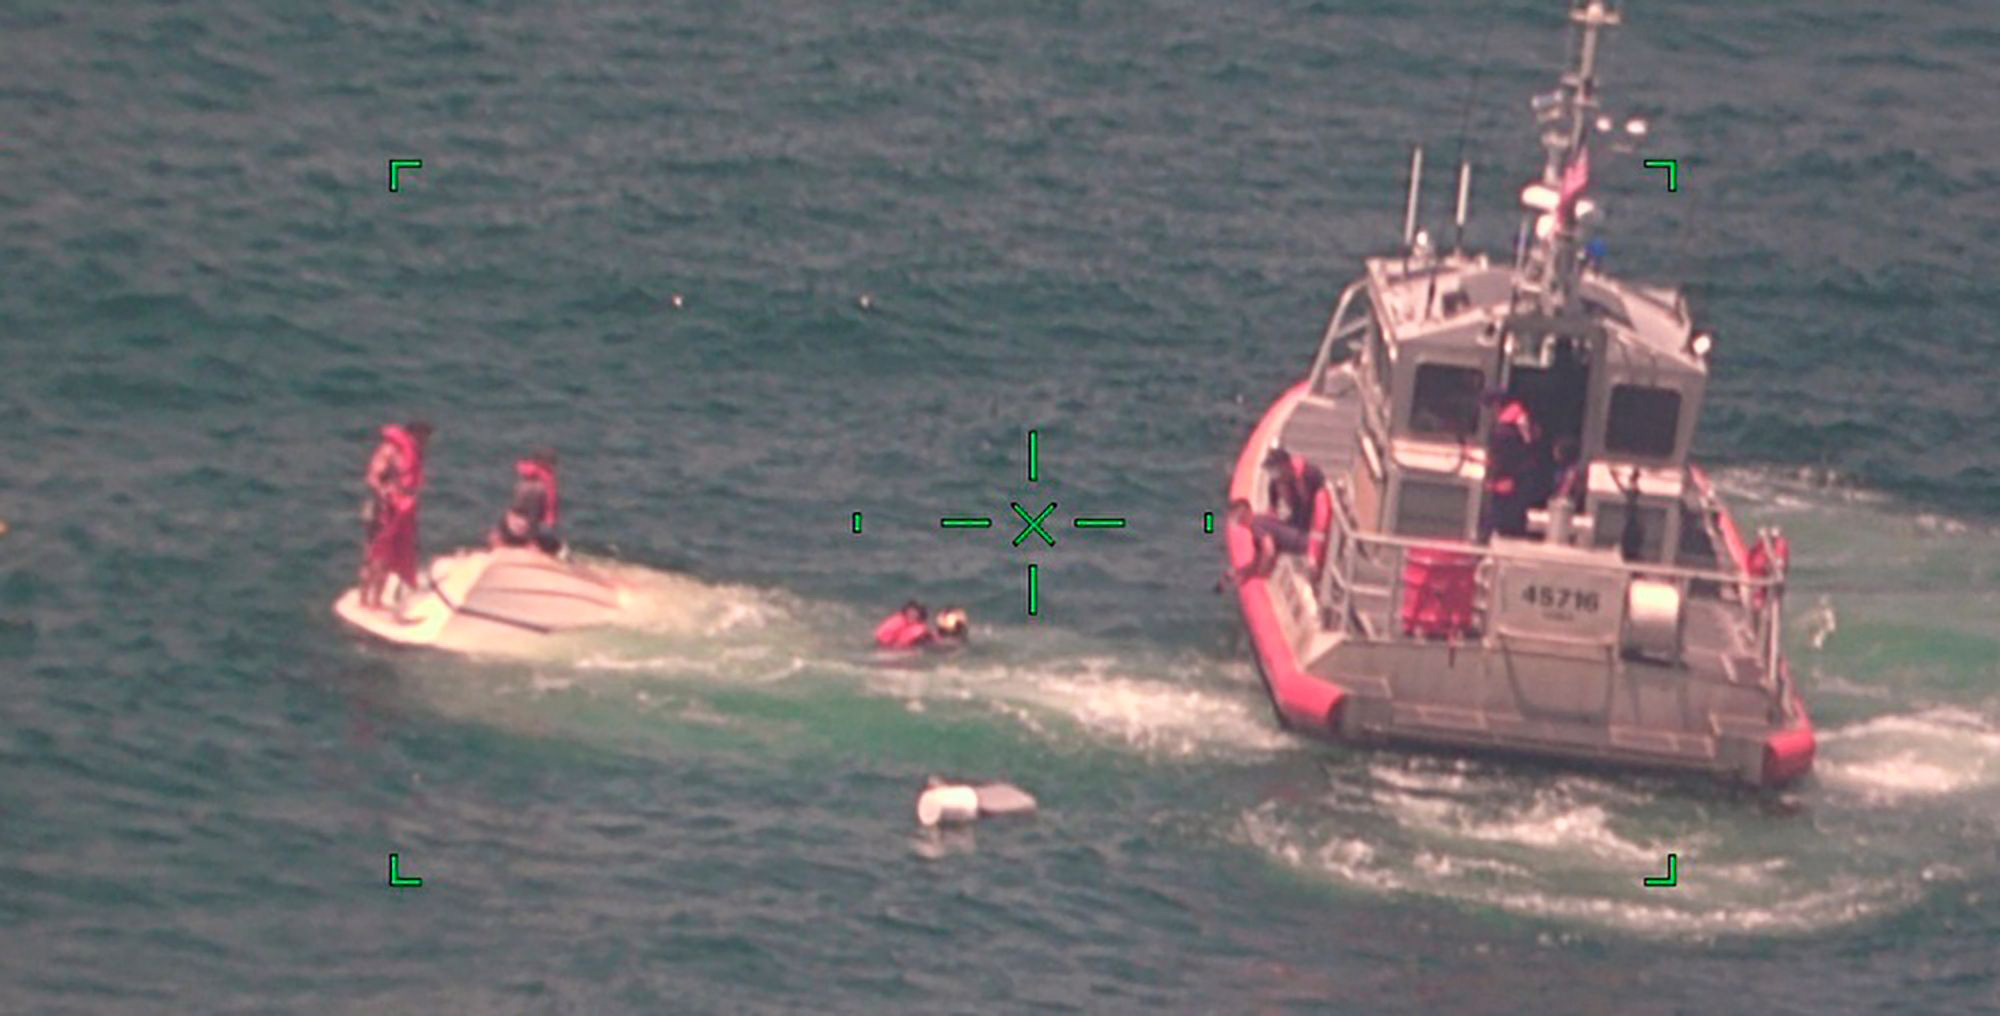 members of the Coast Guard rescue a family of four, from a vessel taking on water 17 miles south of Southwest Pass near Venice, La